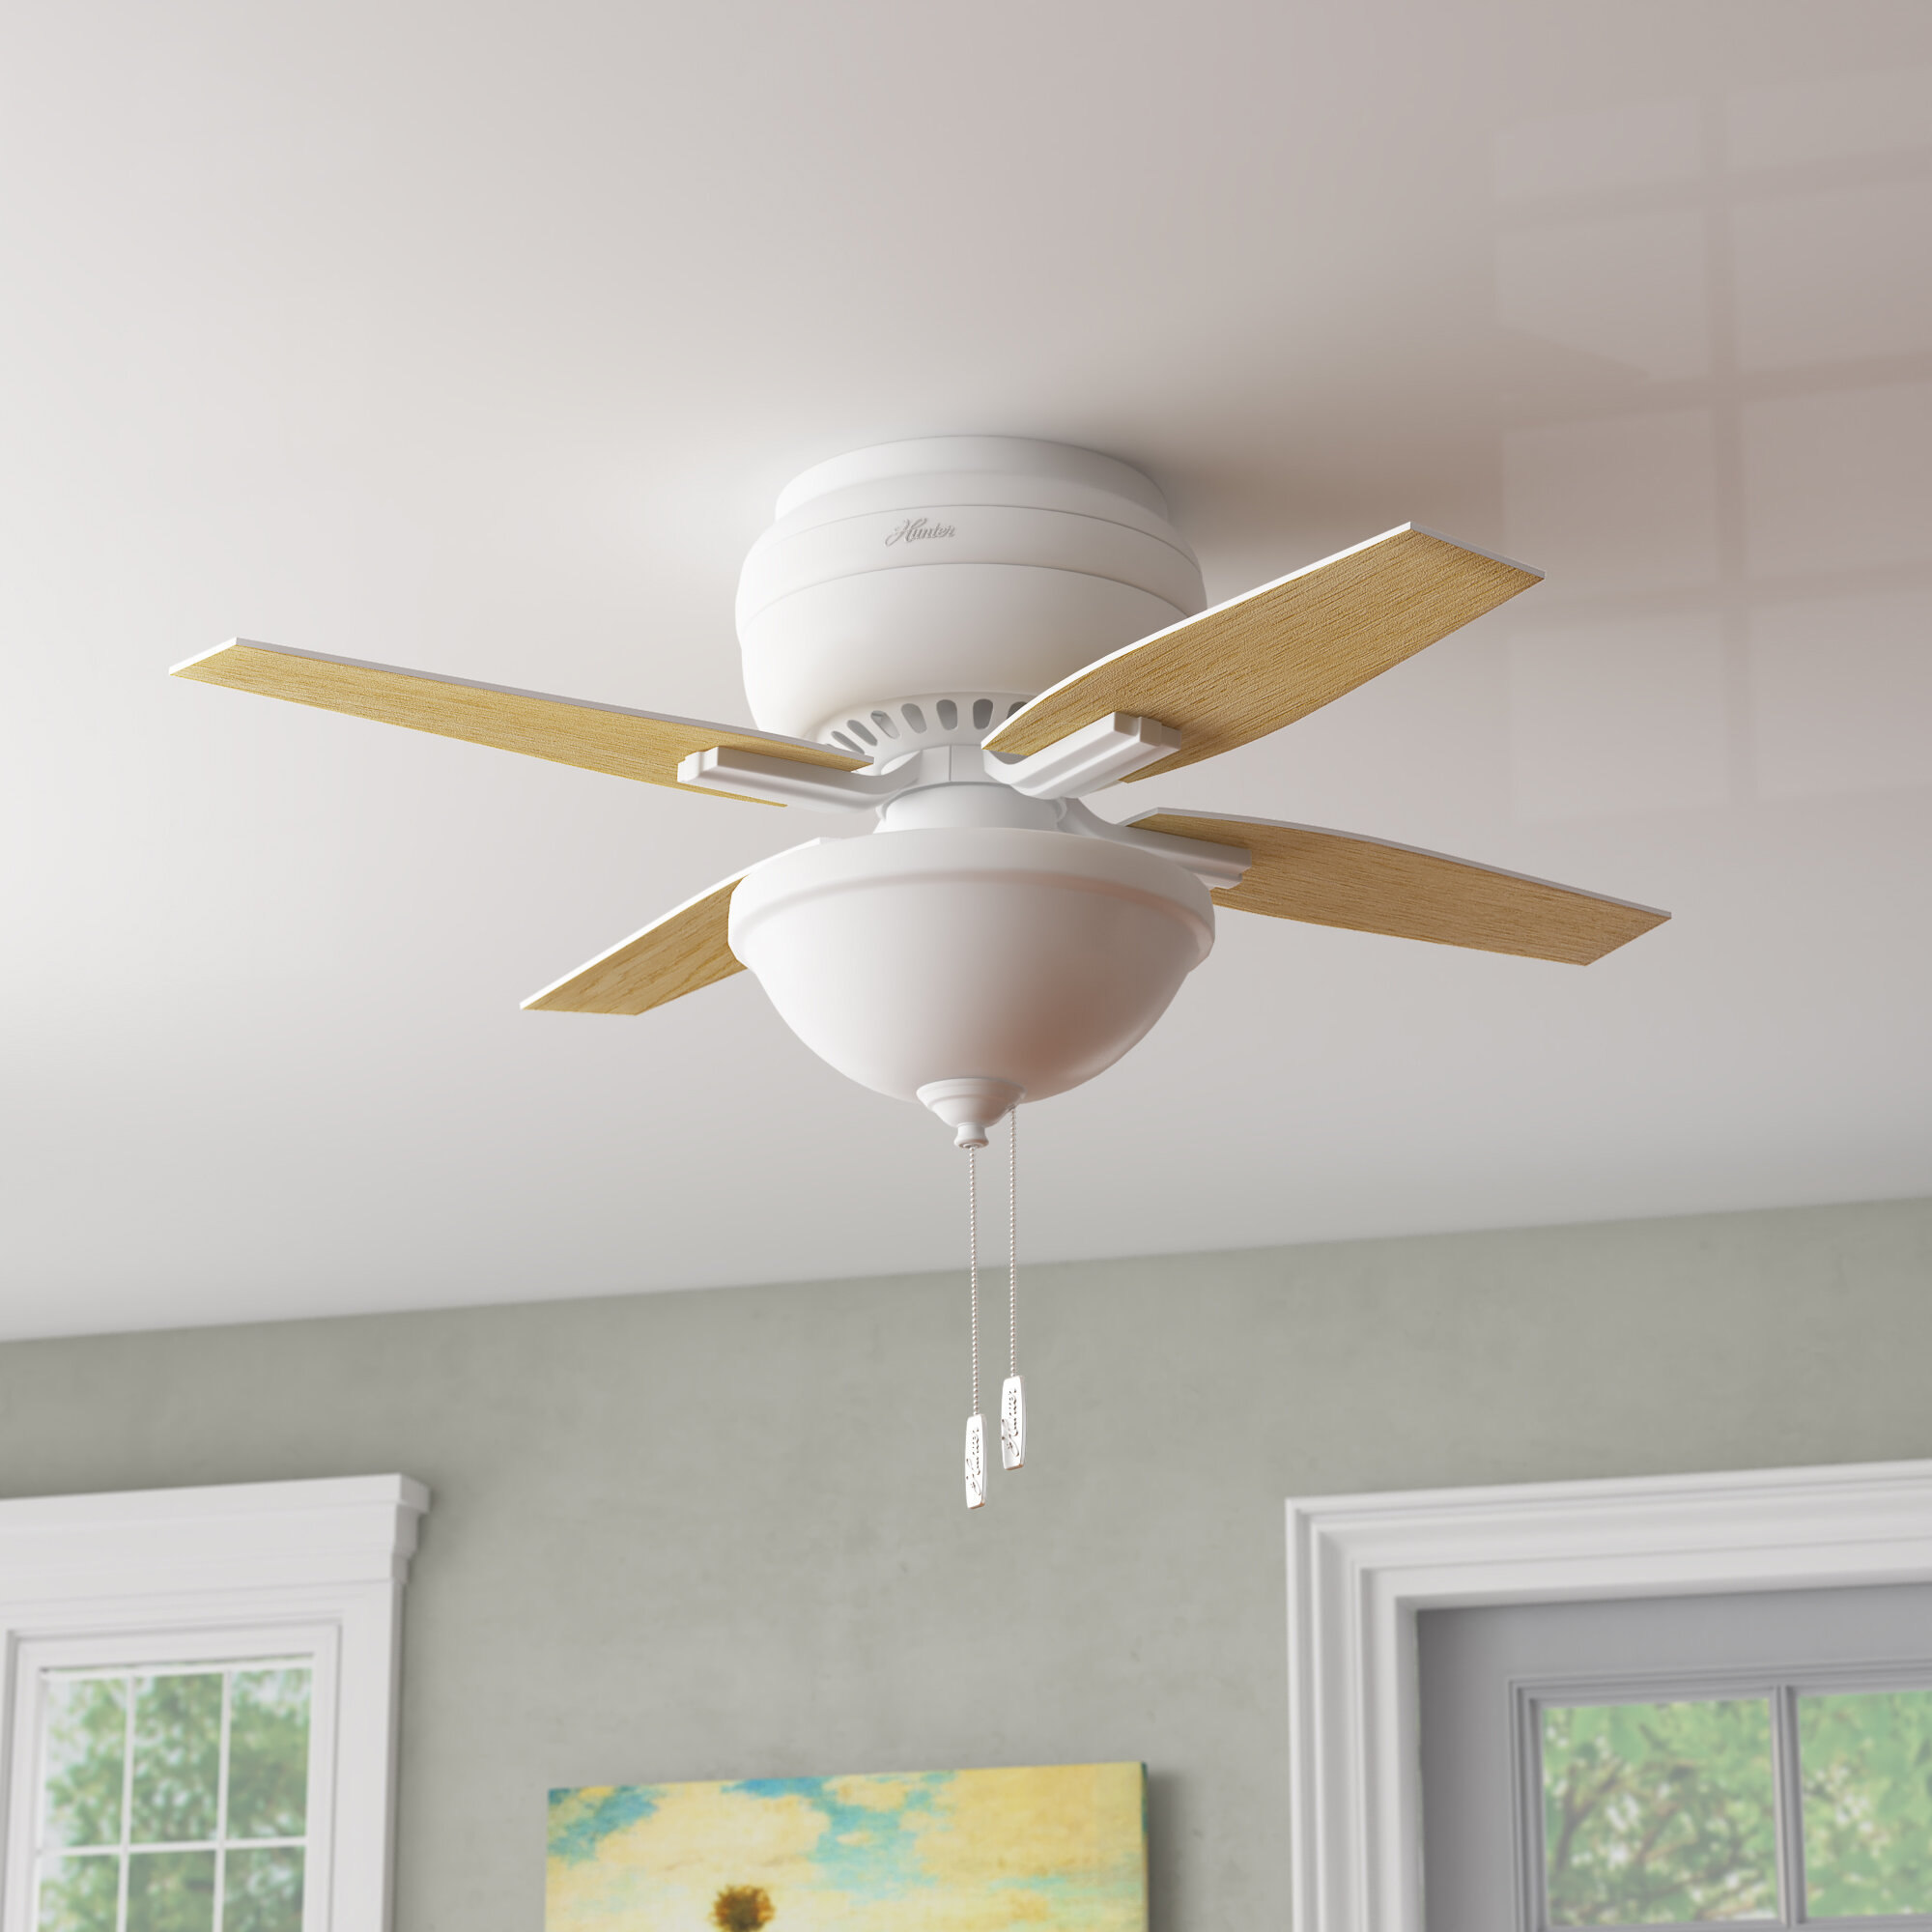 Hunter Fan 42 5 Blade Flush Mount Ceiling Fan With Pull Chain And Light Kit Included Reviews Wayfair